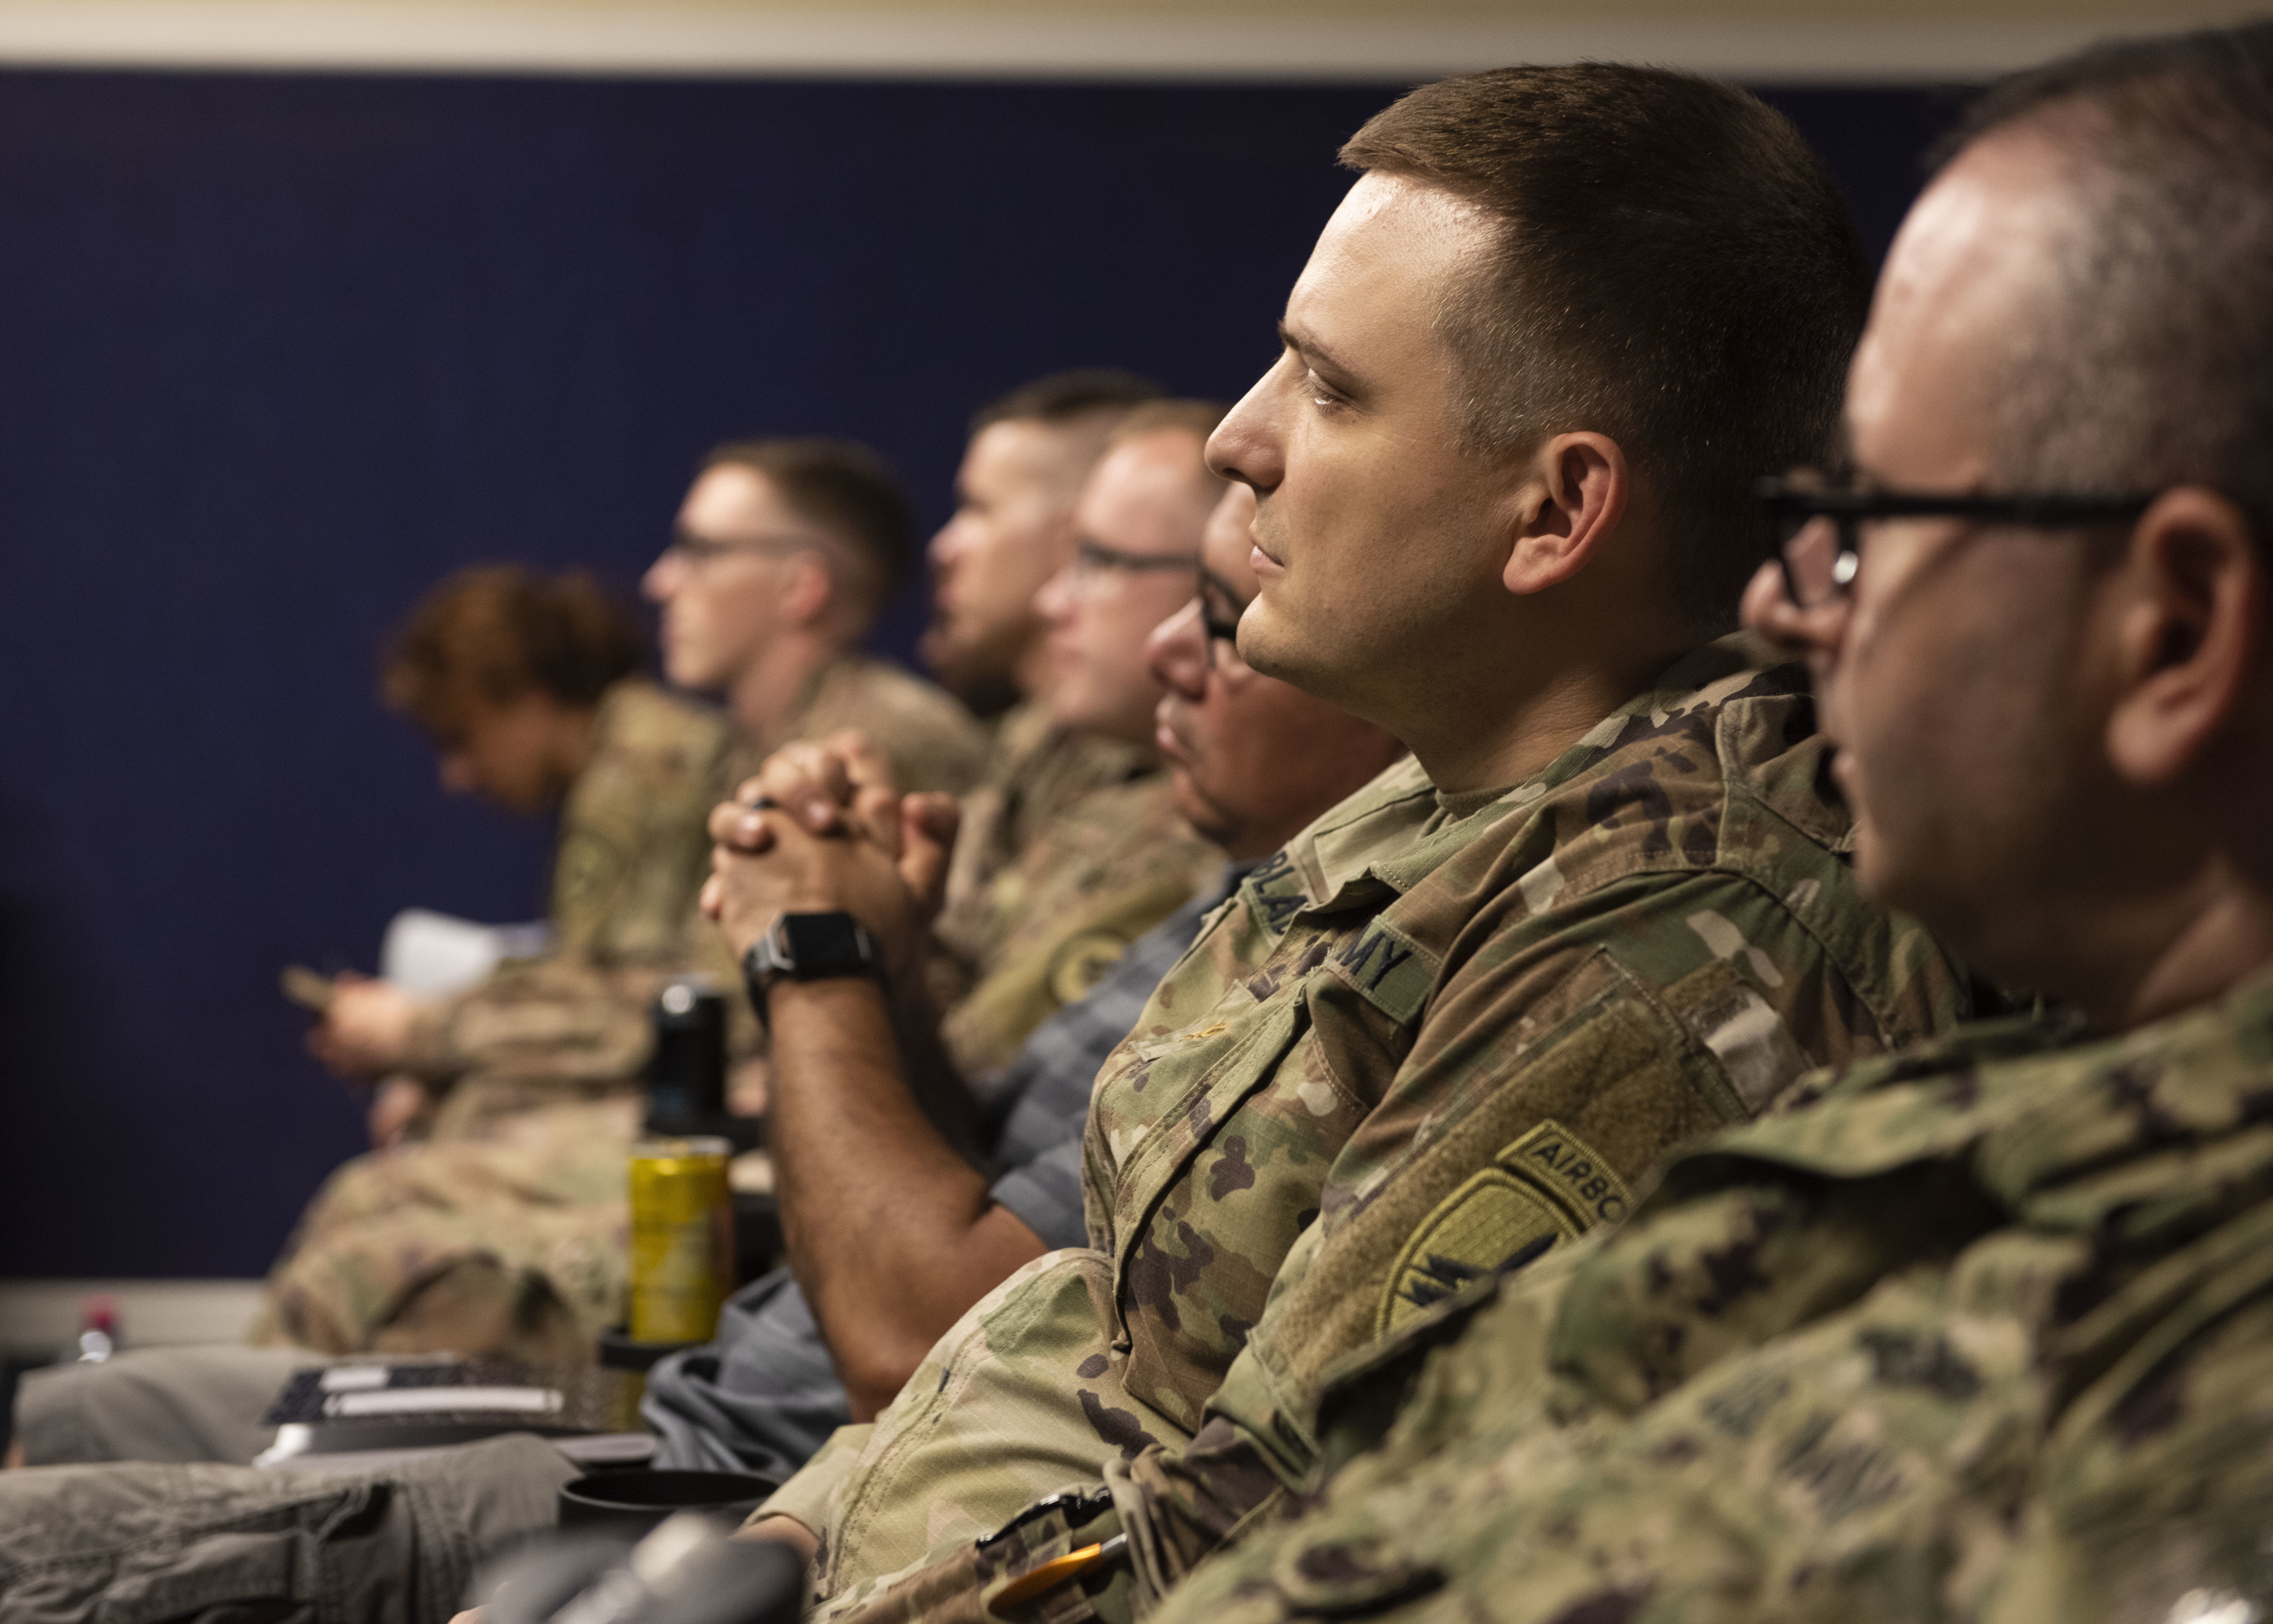 Combined Joint Task Force-Horn of Africa service members listen to a brief during a Fundamentals of Global Health Engagement (FOGHE) course at Camp Lemonnier, Djibouti, June 11, 2019. The FOGHE is a three-day course to improve understanding of the full array of issues surrounding and shaping global health engagements. (U.S. Air Force photo by Staff Sgt. Franklin R. Ramos)